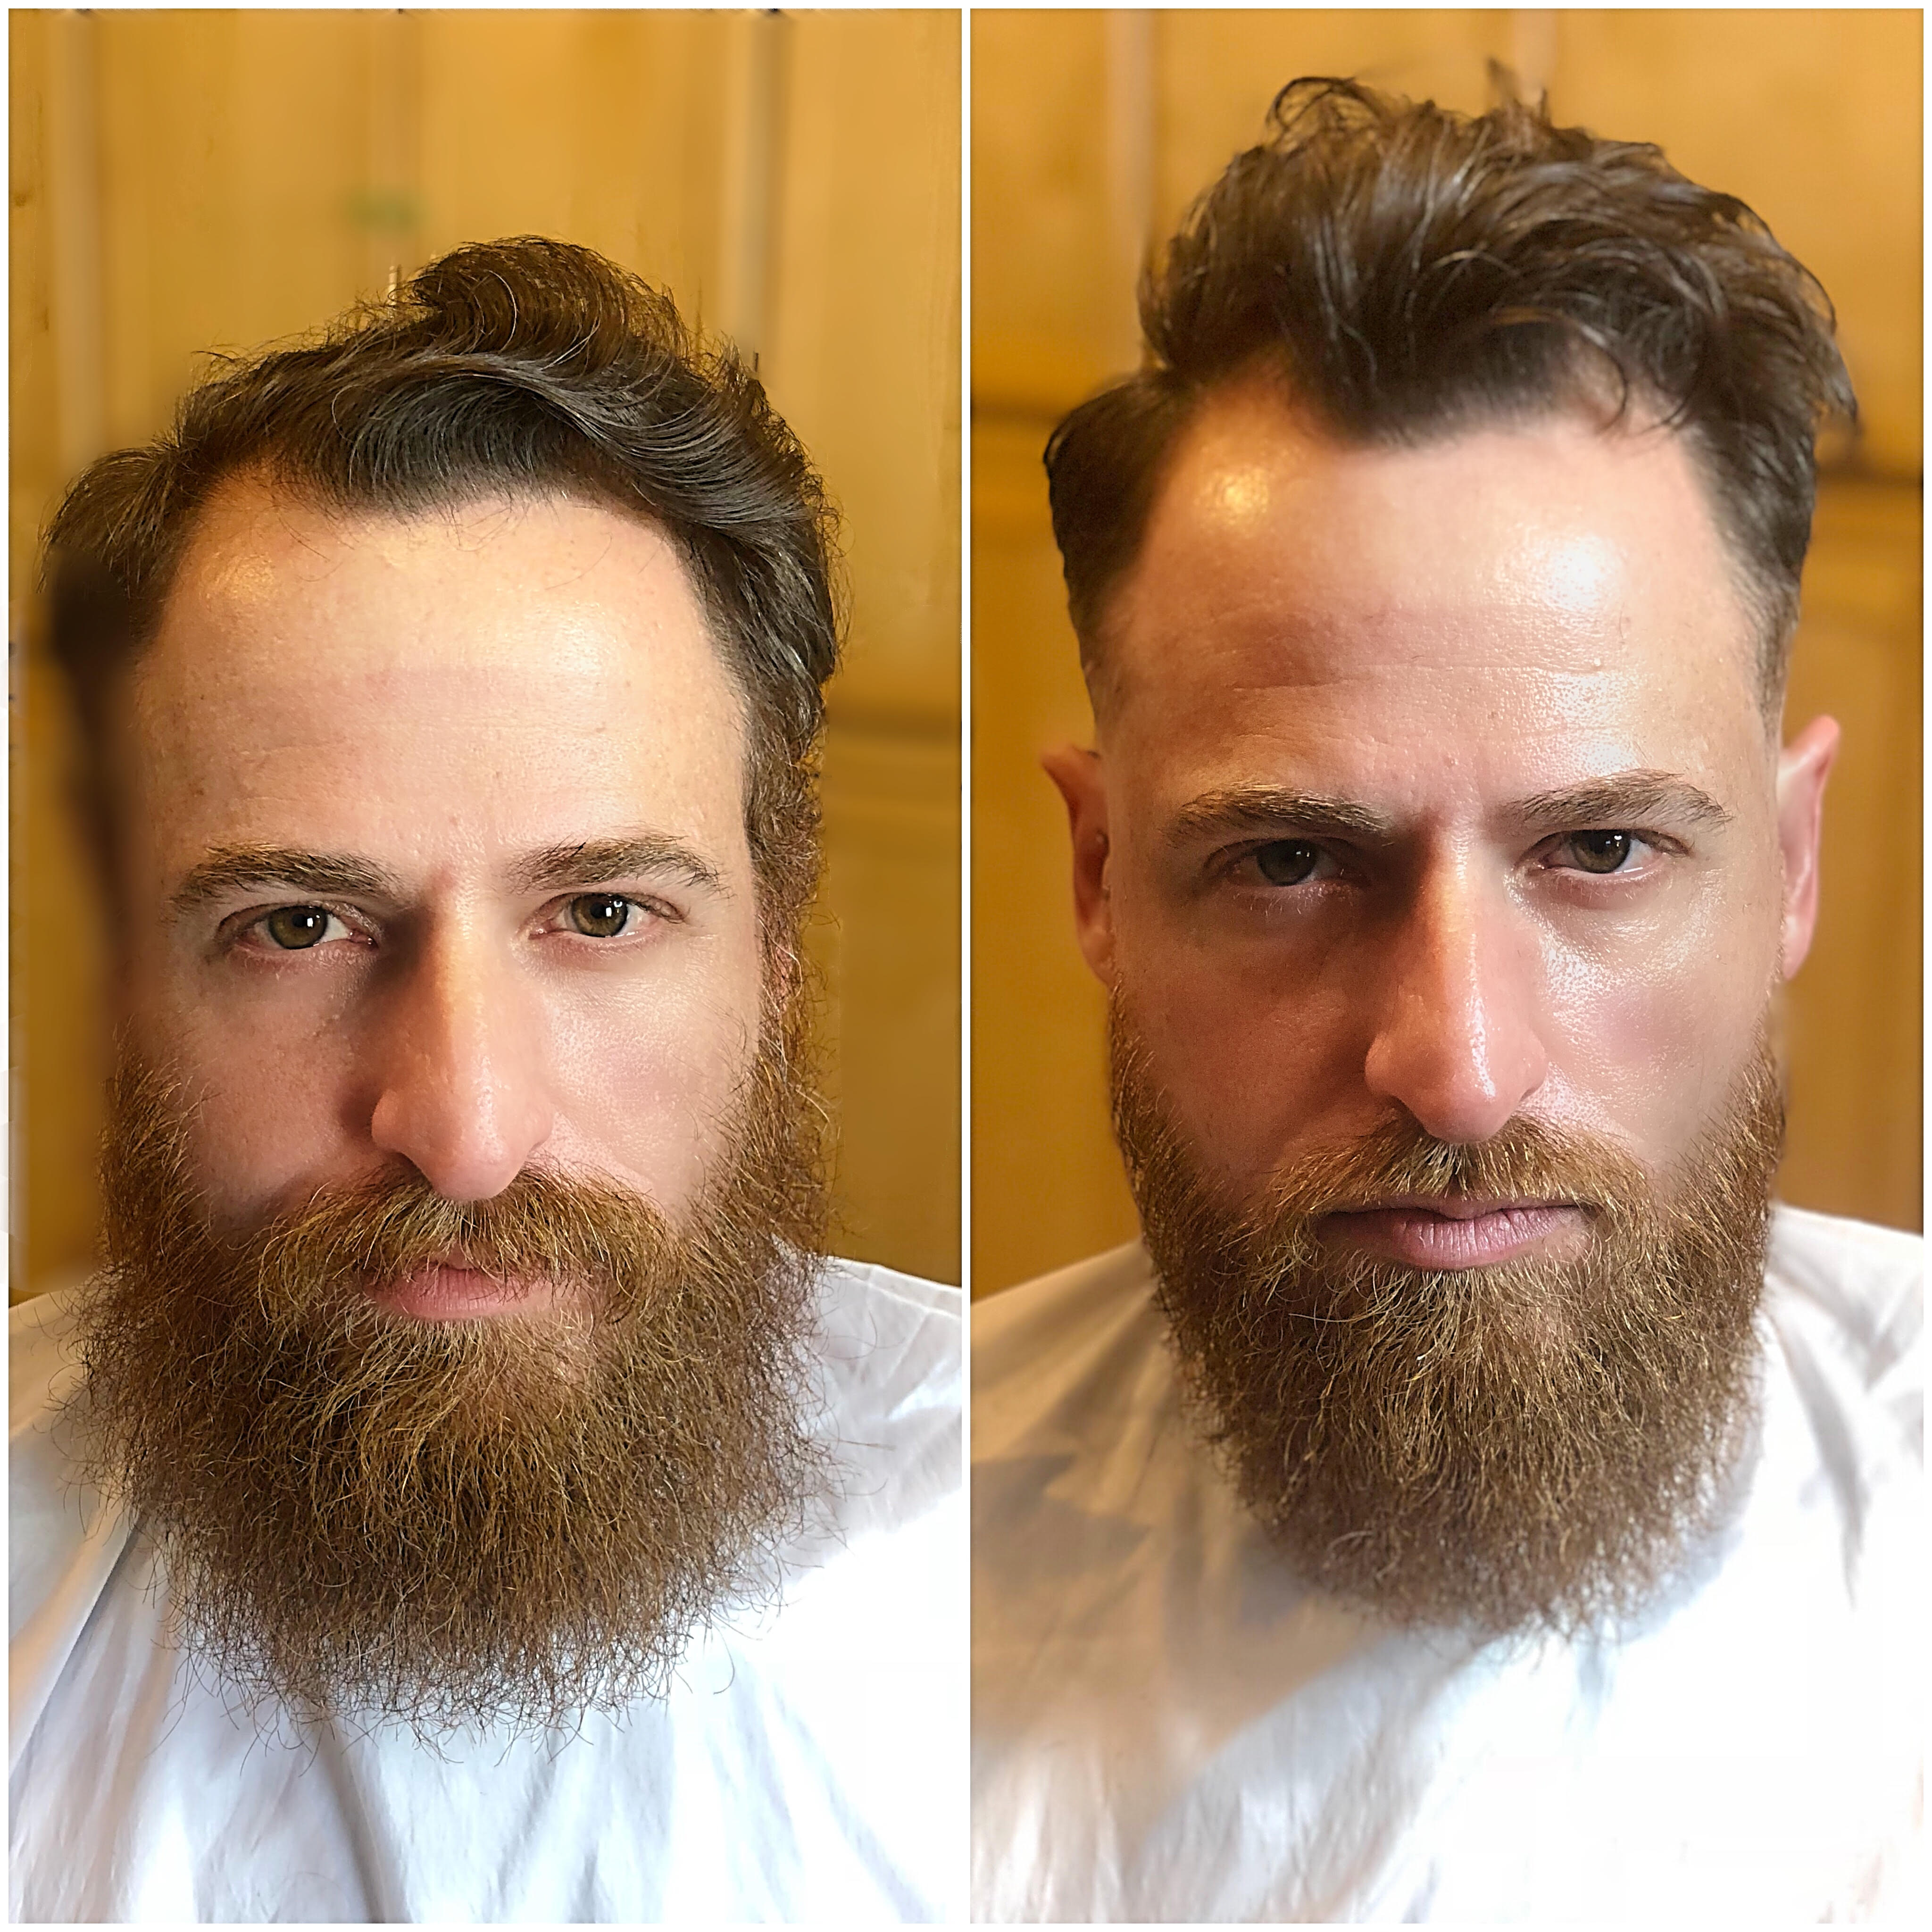 Four Must-Follow Beard Grooming Tips from @thecutcoach